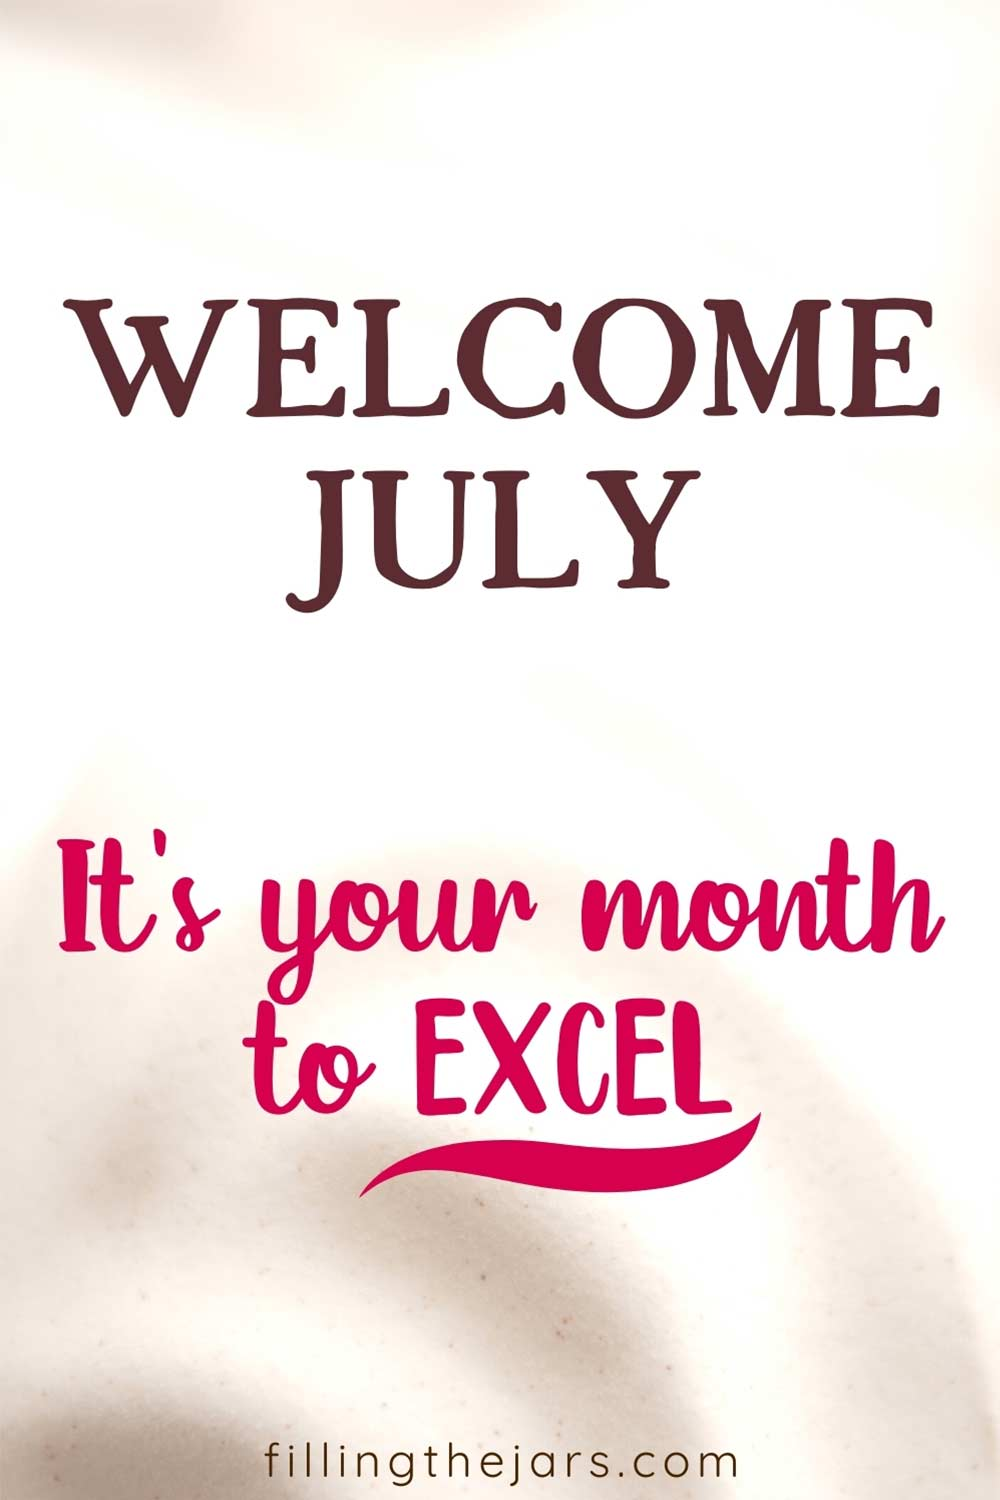 Welcome July it's your month to excel motivational text over ultra-close image of seashell.